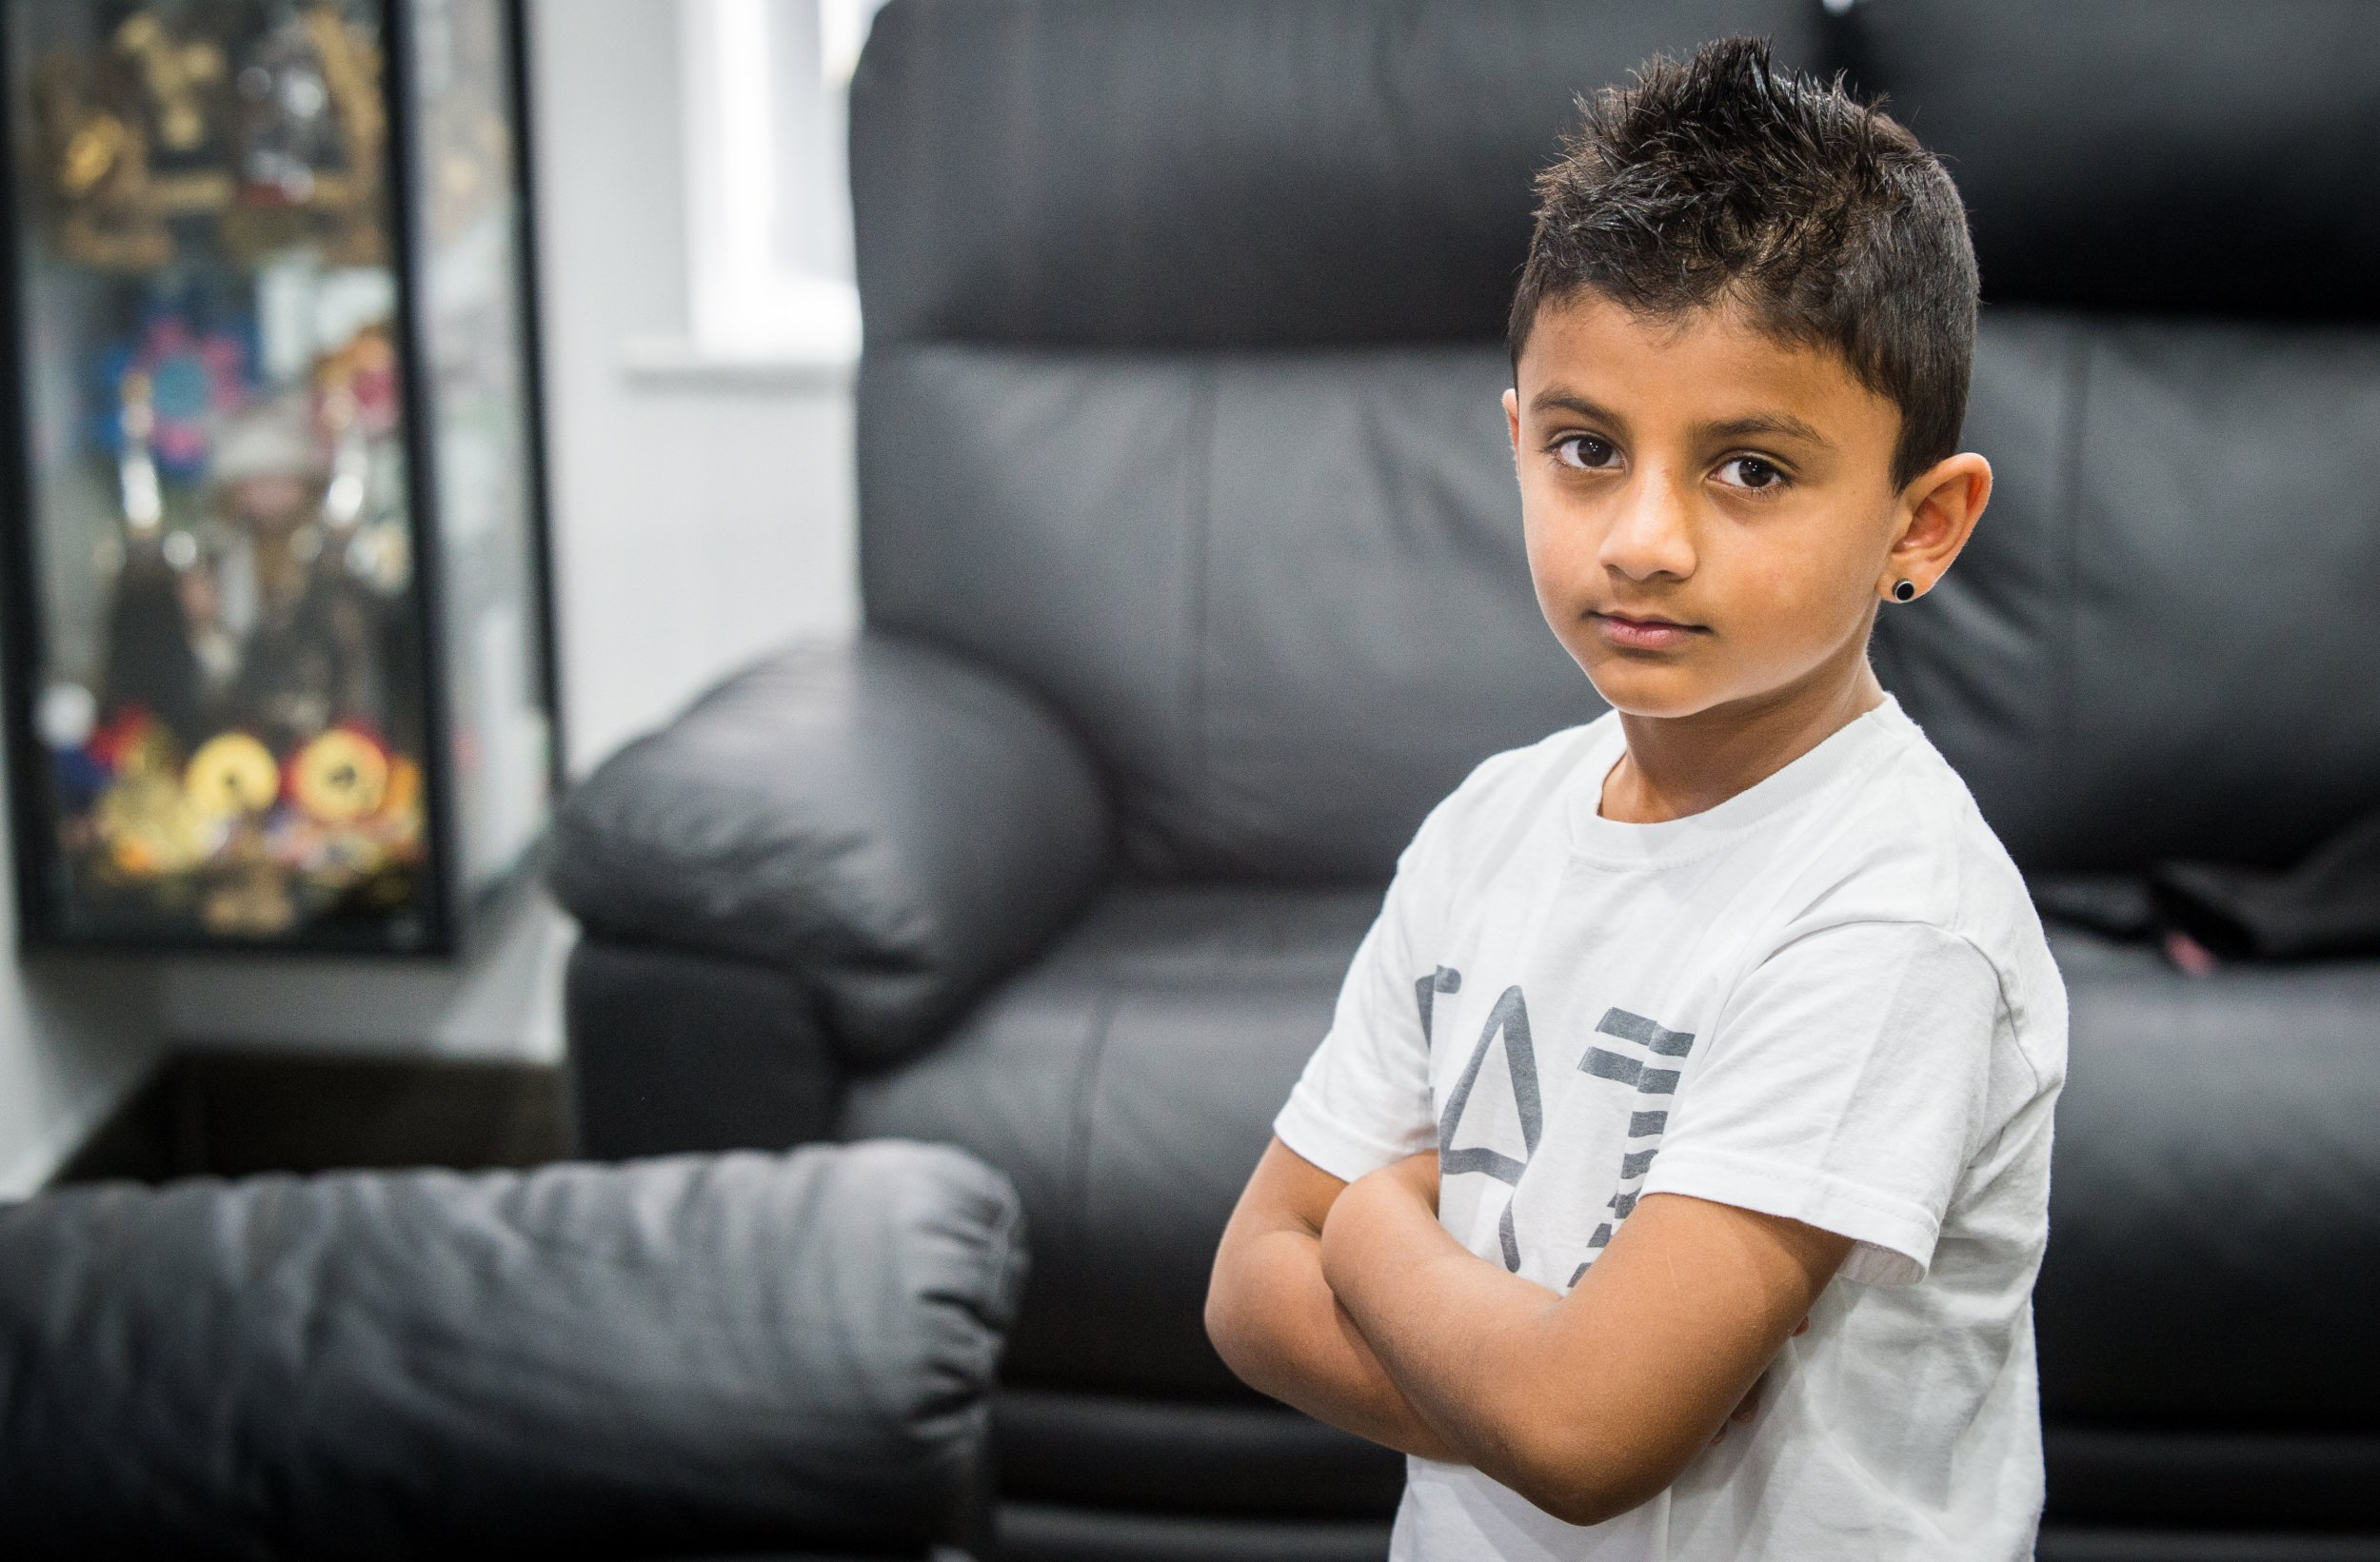 A concerned mother claims her seven-year-old son swallowed plastic pieces after biting into a vanilla-filled chocolate egg bought from Poundland. Kaelen Shah, seven, hurt his teeth when he bit into some of the ?hard rubbery? material, which he mistakenly thought to be cookie crumble. Caption: Kaelen Shah from Leicester, who allegedly swallowed some plastic while eating some 'Spoon it Out' vanilla filled milk chocolate eggs purchased from Poundland